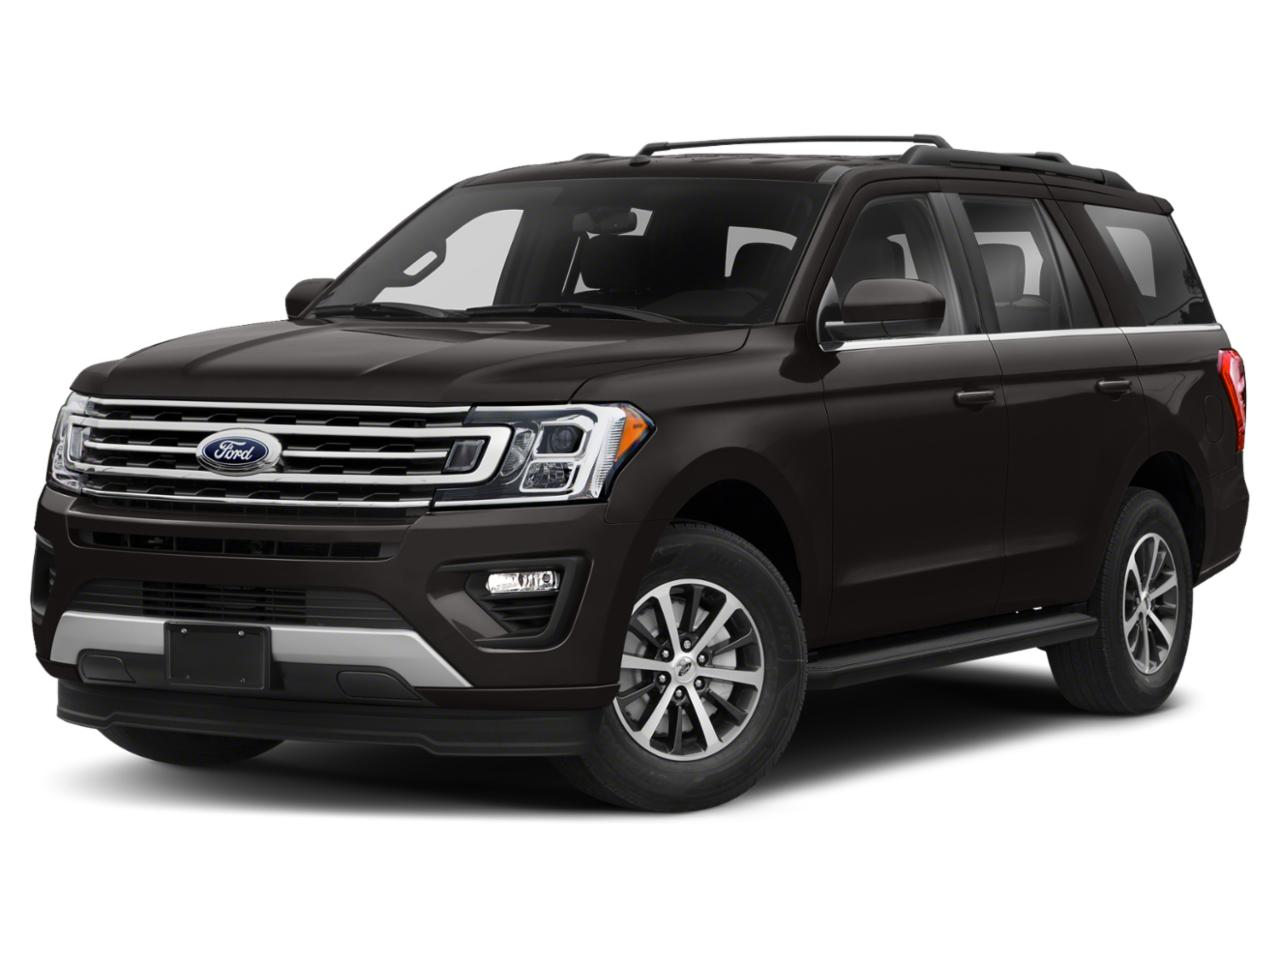 2020 Ford Expedition Vehicle Photo in Neenah, WI 54956-3151